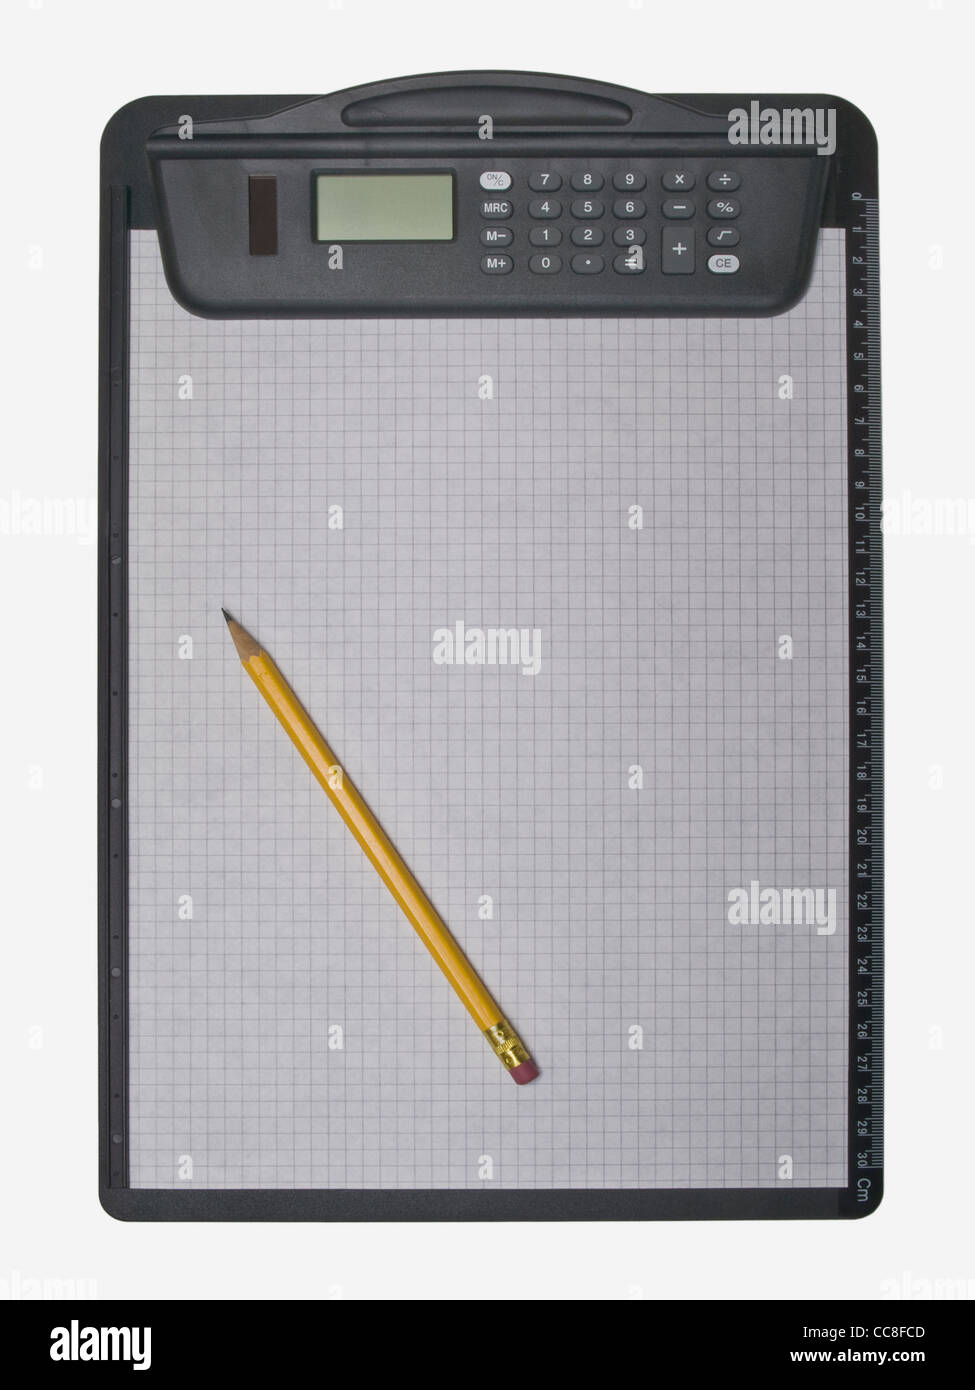 Klemmbrett Klammer A Clipboard With A Pocket Calculator And A Sheet Of Paper A Pen